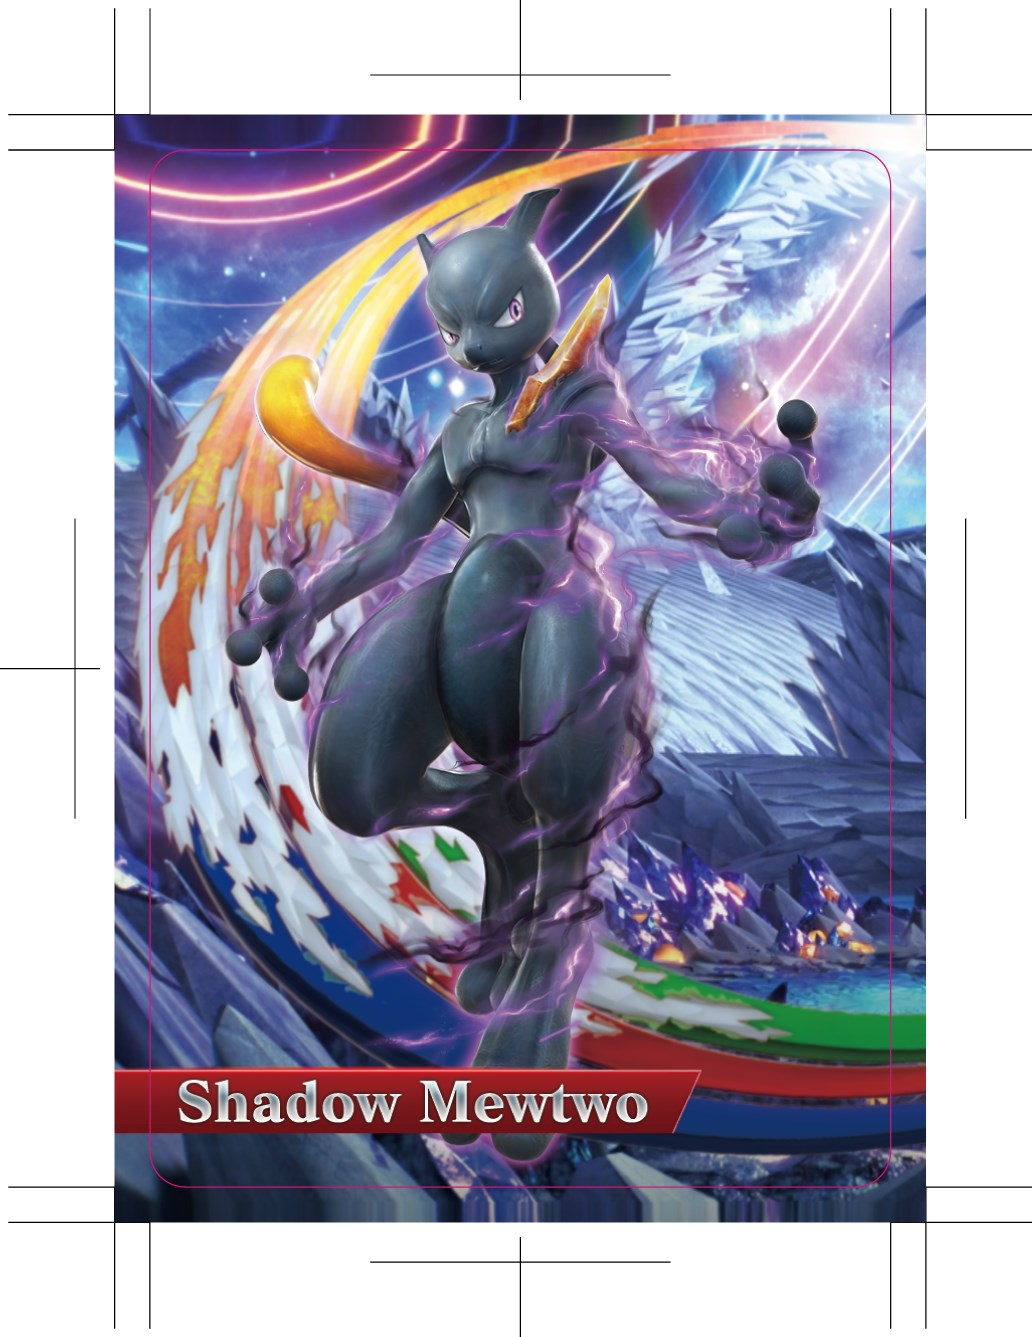 First-run editions of Pokkén Tournament all come with a Shadow Mewtwo Amiibo card.